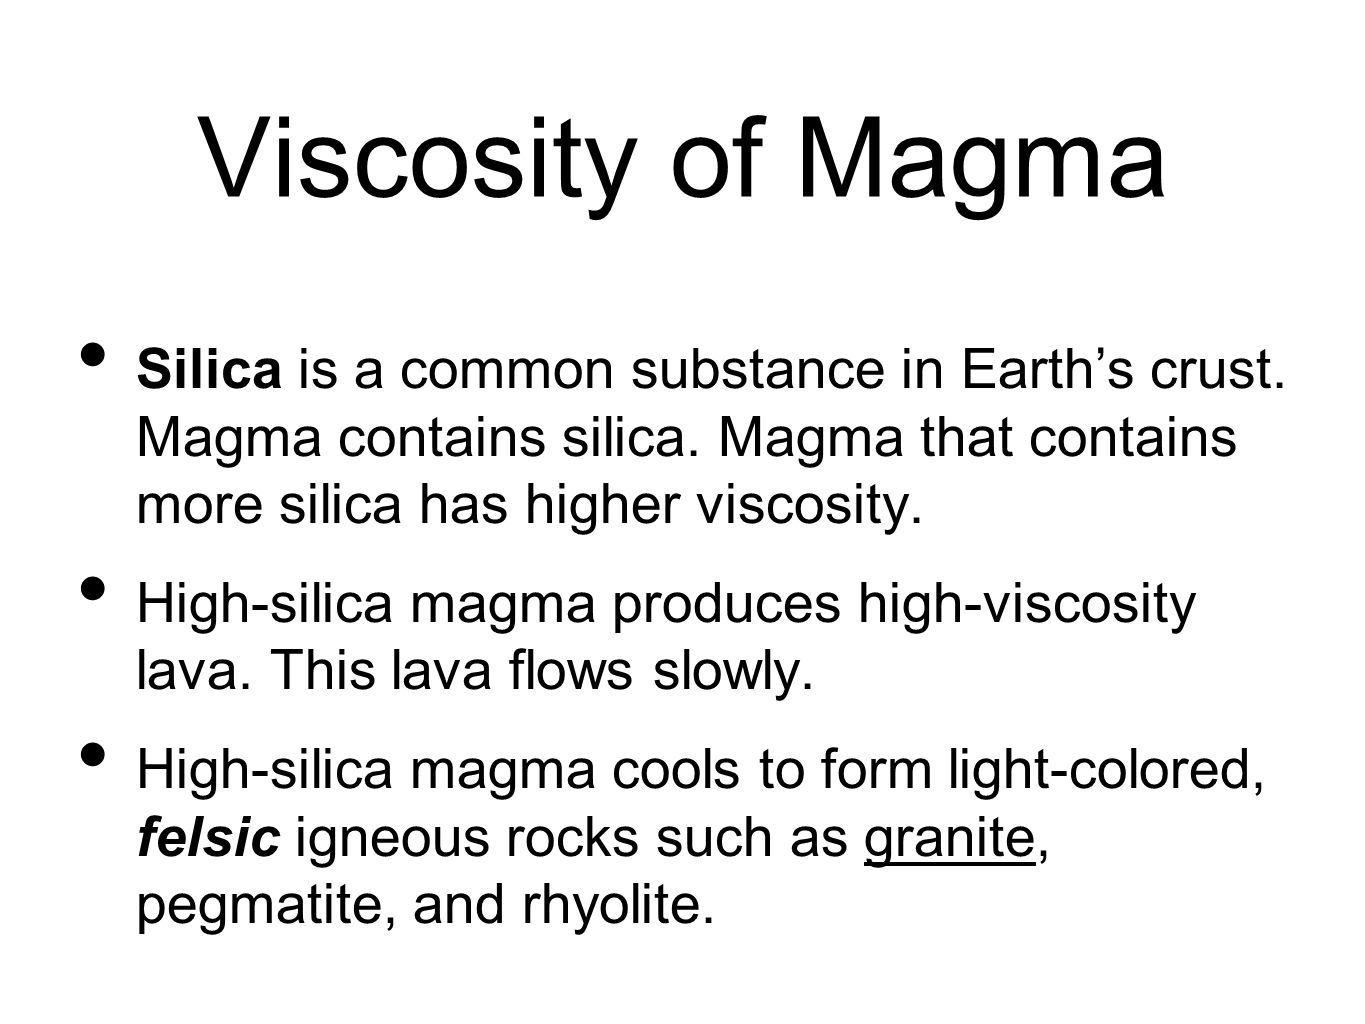 Viscosity of MagmaSilica is a common substance in Earth's crust. Magma contains silica. Magma that contains more silica has higher viscosity.